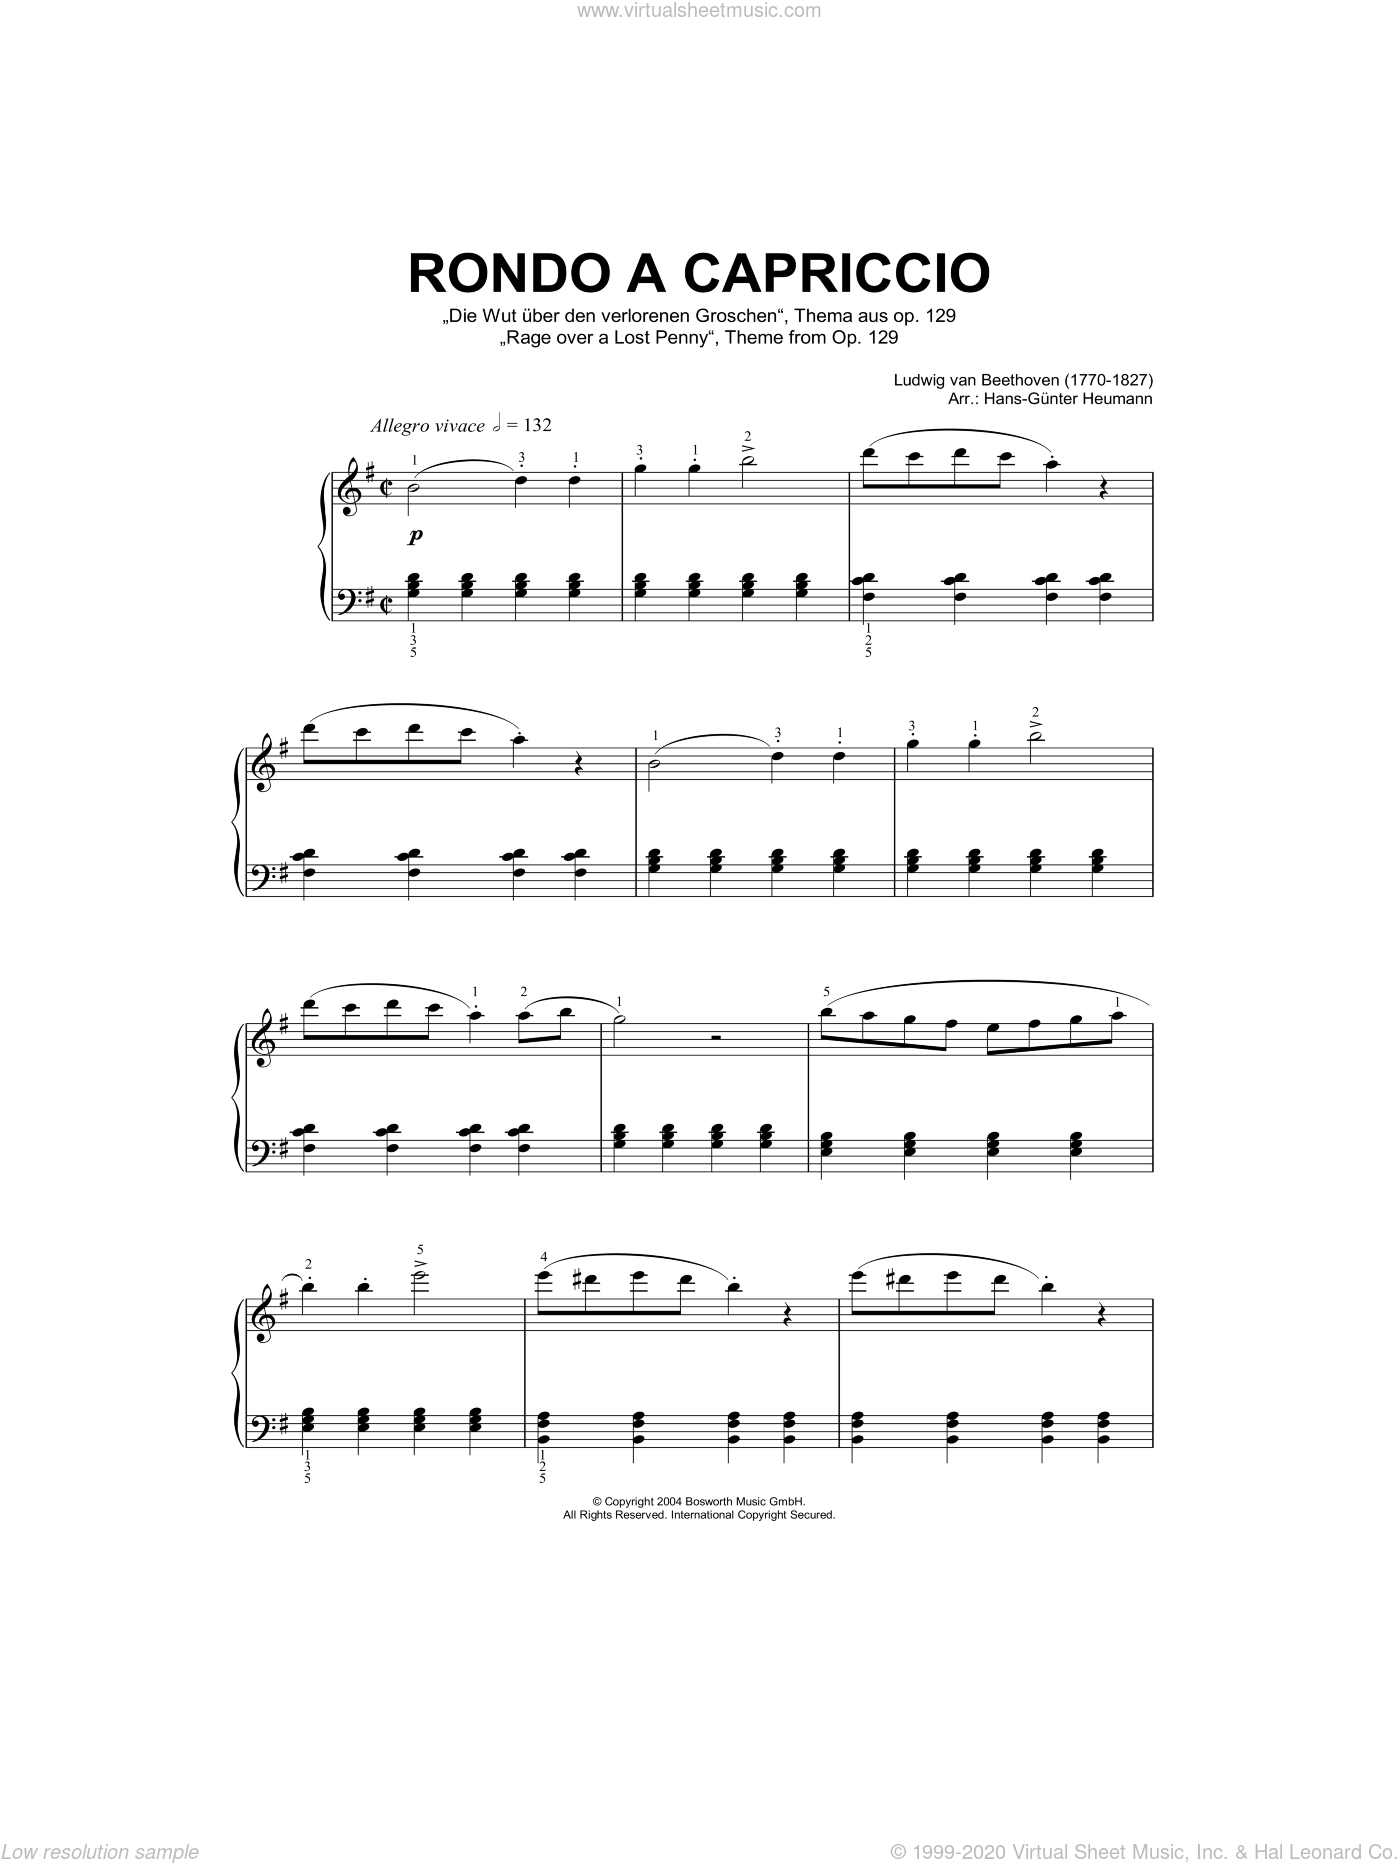 Rondo A Capriccio (Rage Over A Lost Penny), Theme from Op.129 sheet music for piano solo by Ludwig van Beethoven